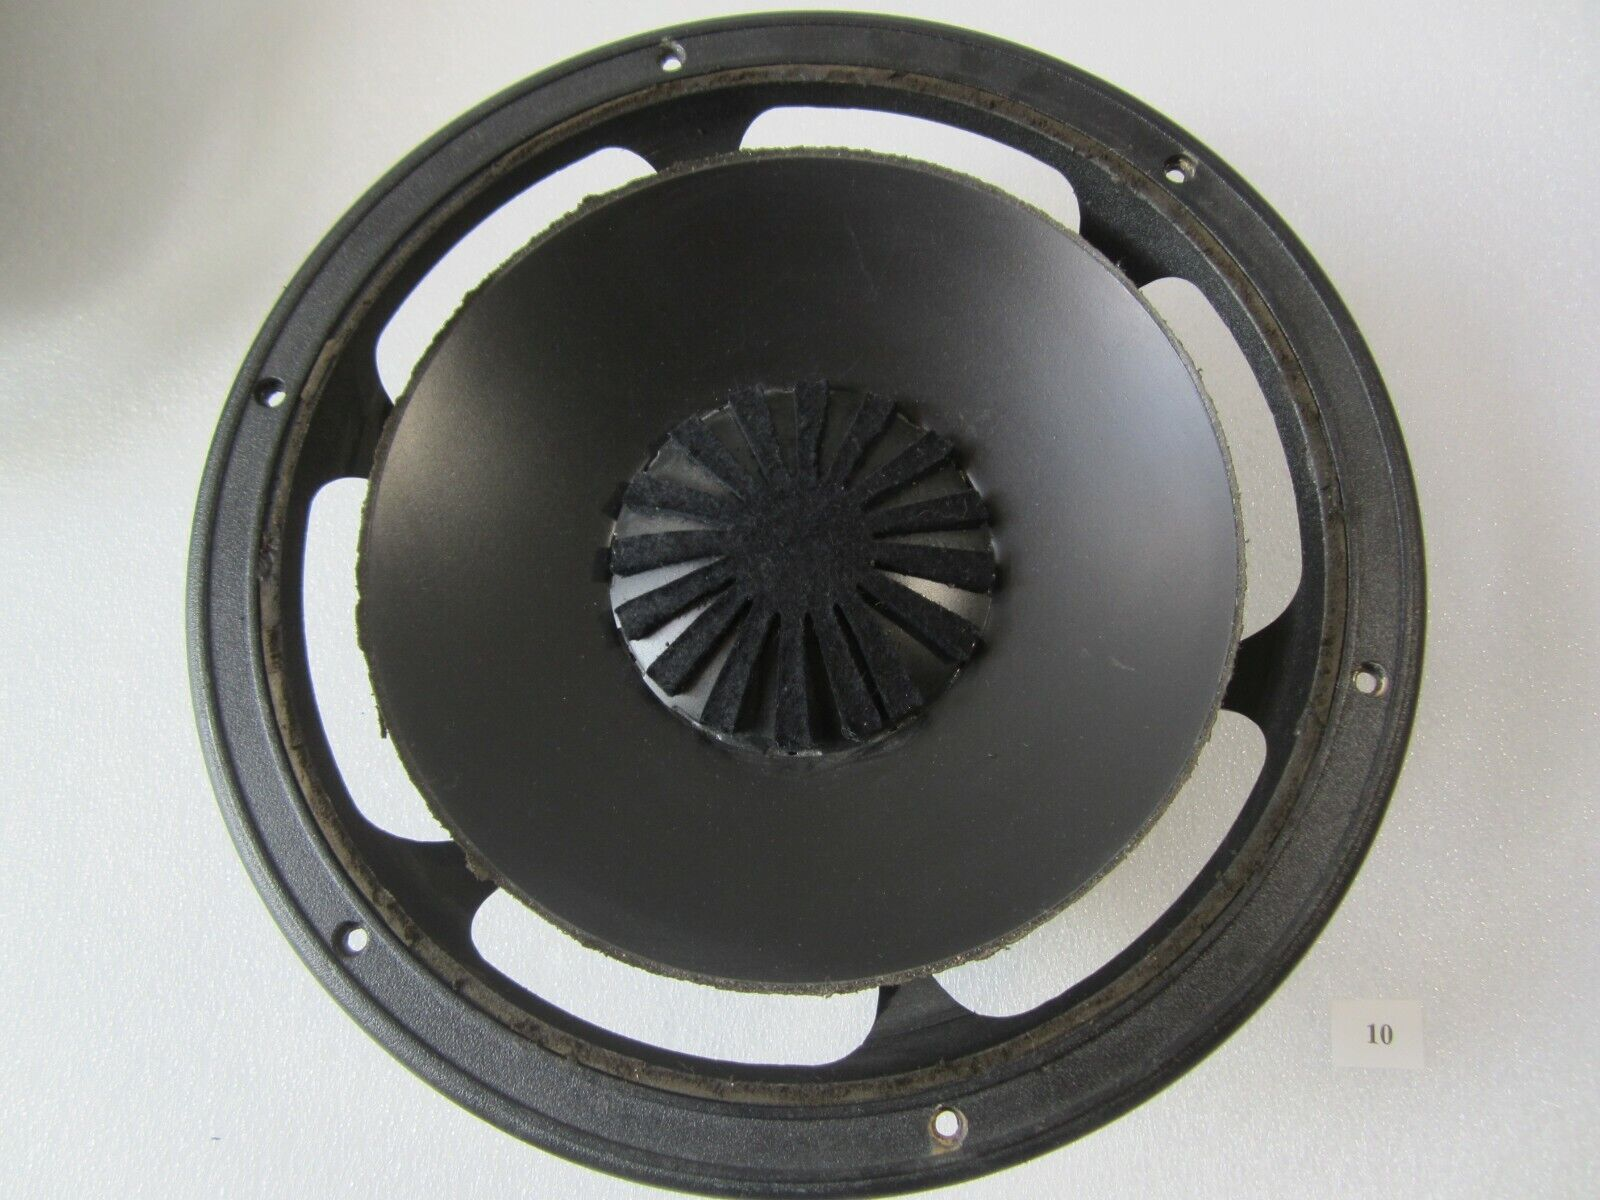 Dynaudio 30w 100 Woofer Subwoofer Used Tested Good 10  - $149.00